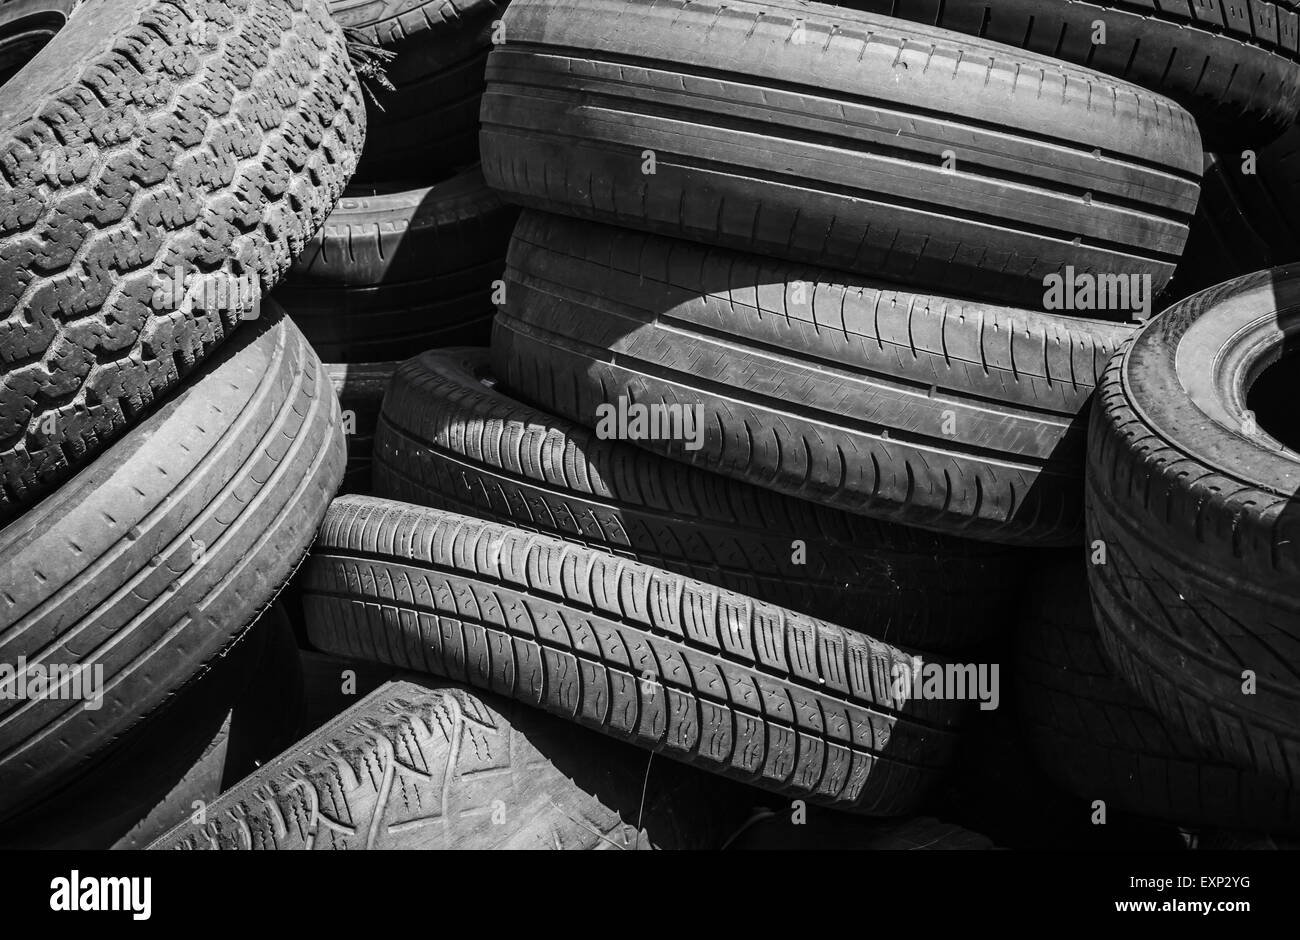 Heap of old used worn-out tires - Stock Image